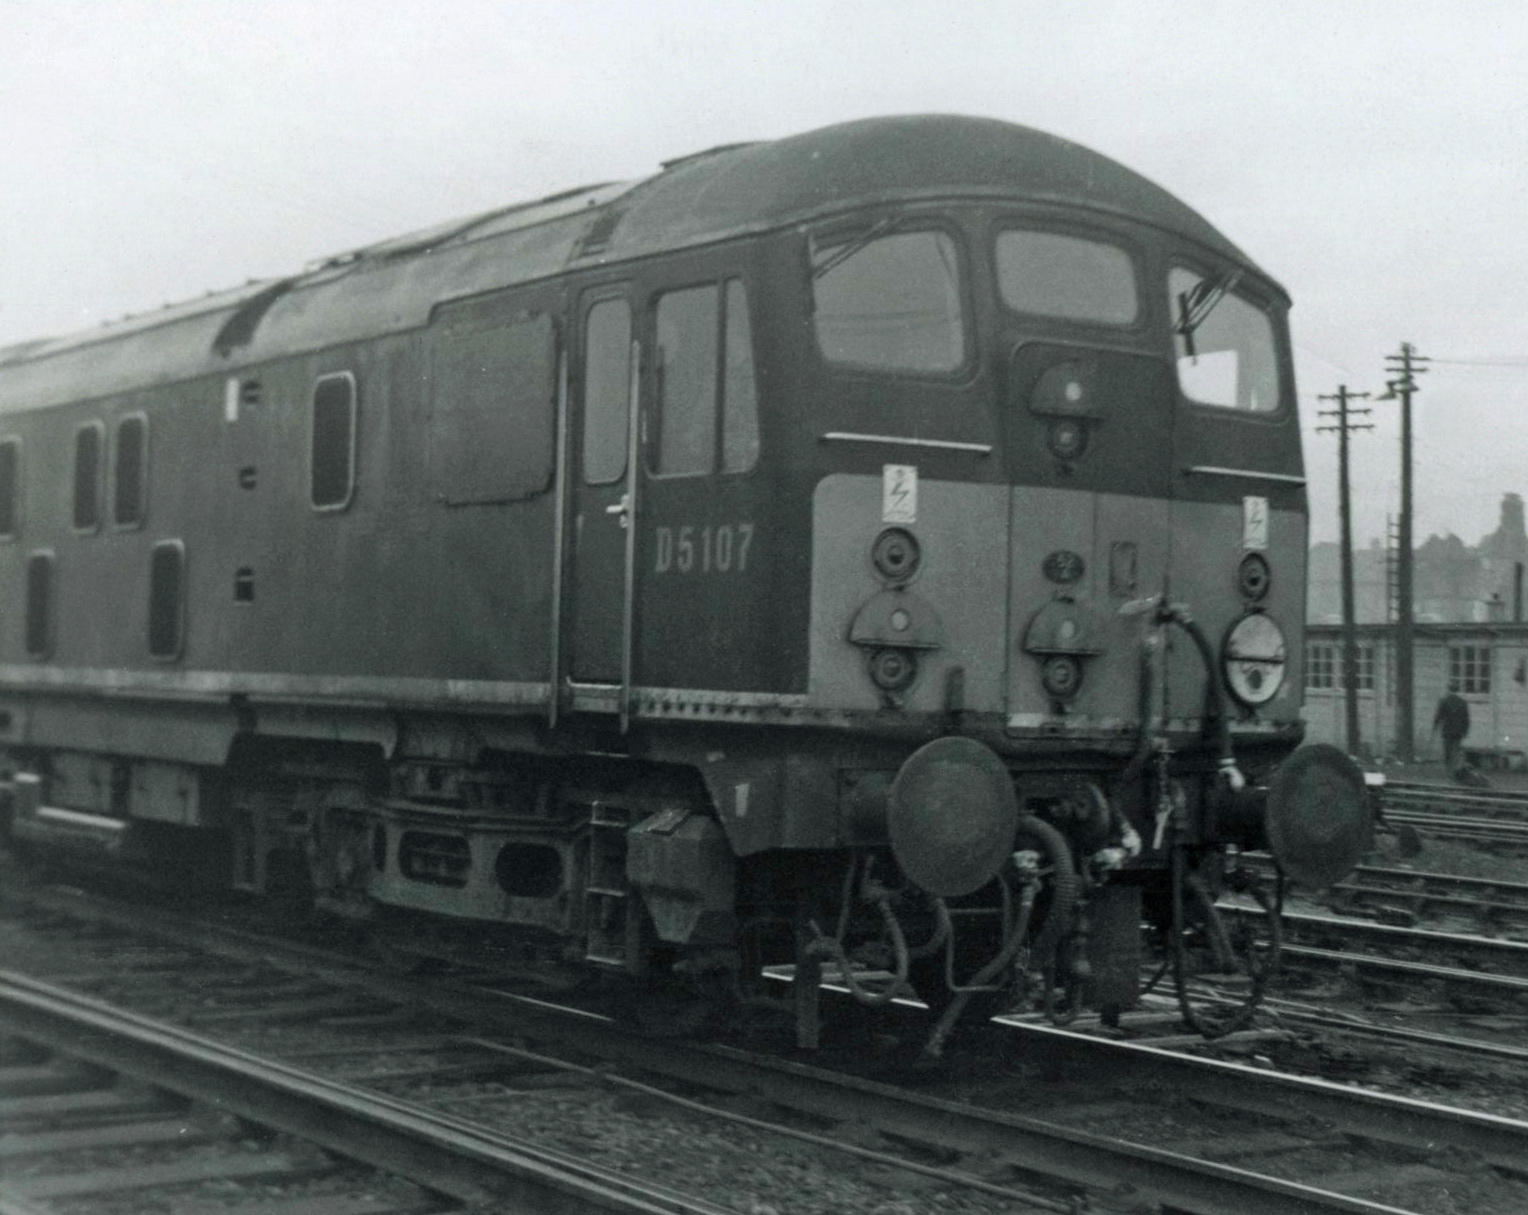 D5107 at Wearmouth on 31 January 1967.